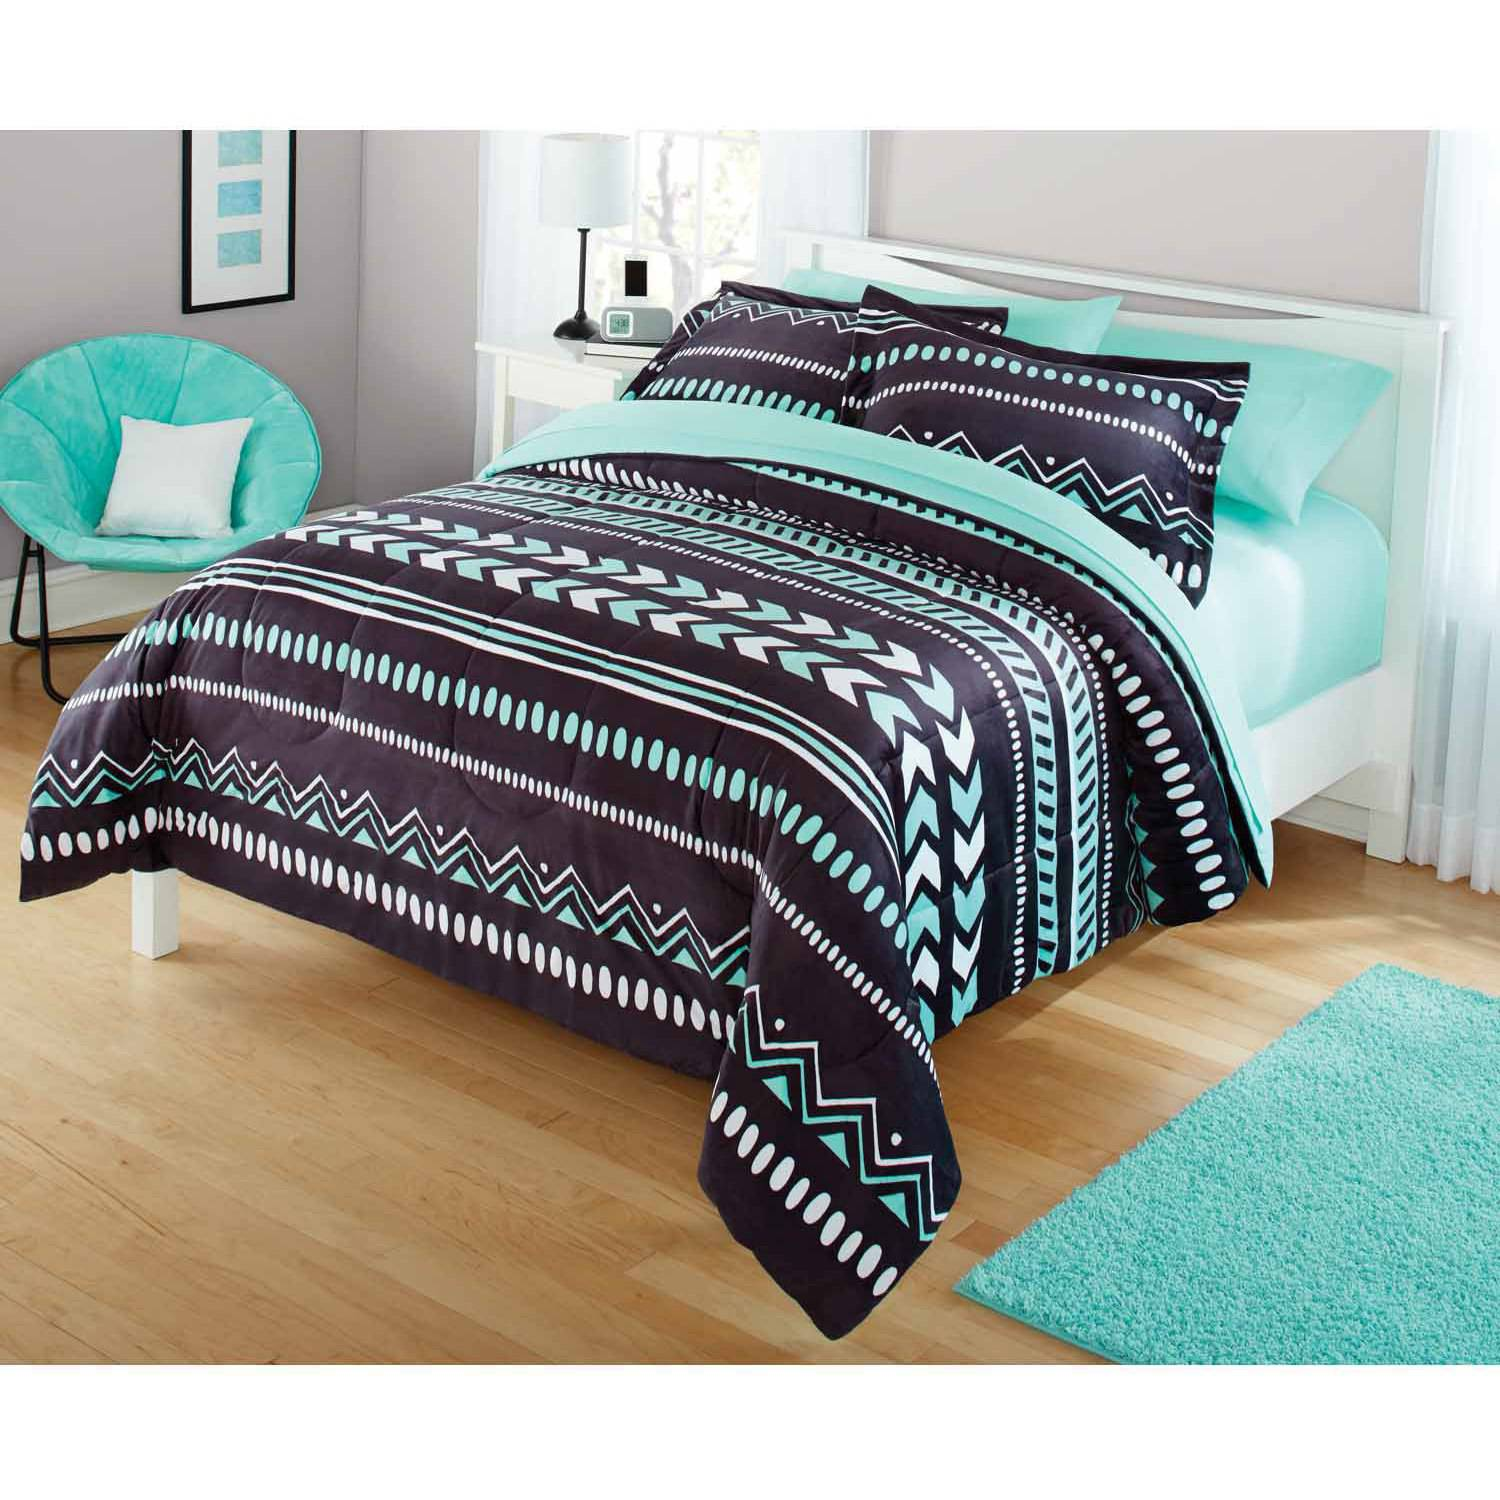 Bedding sets for teenage girls walmart - Bedding Sets For Teenage Girls Walmart 3